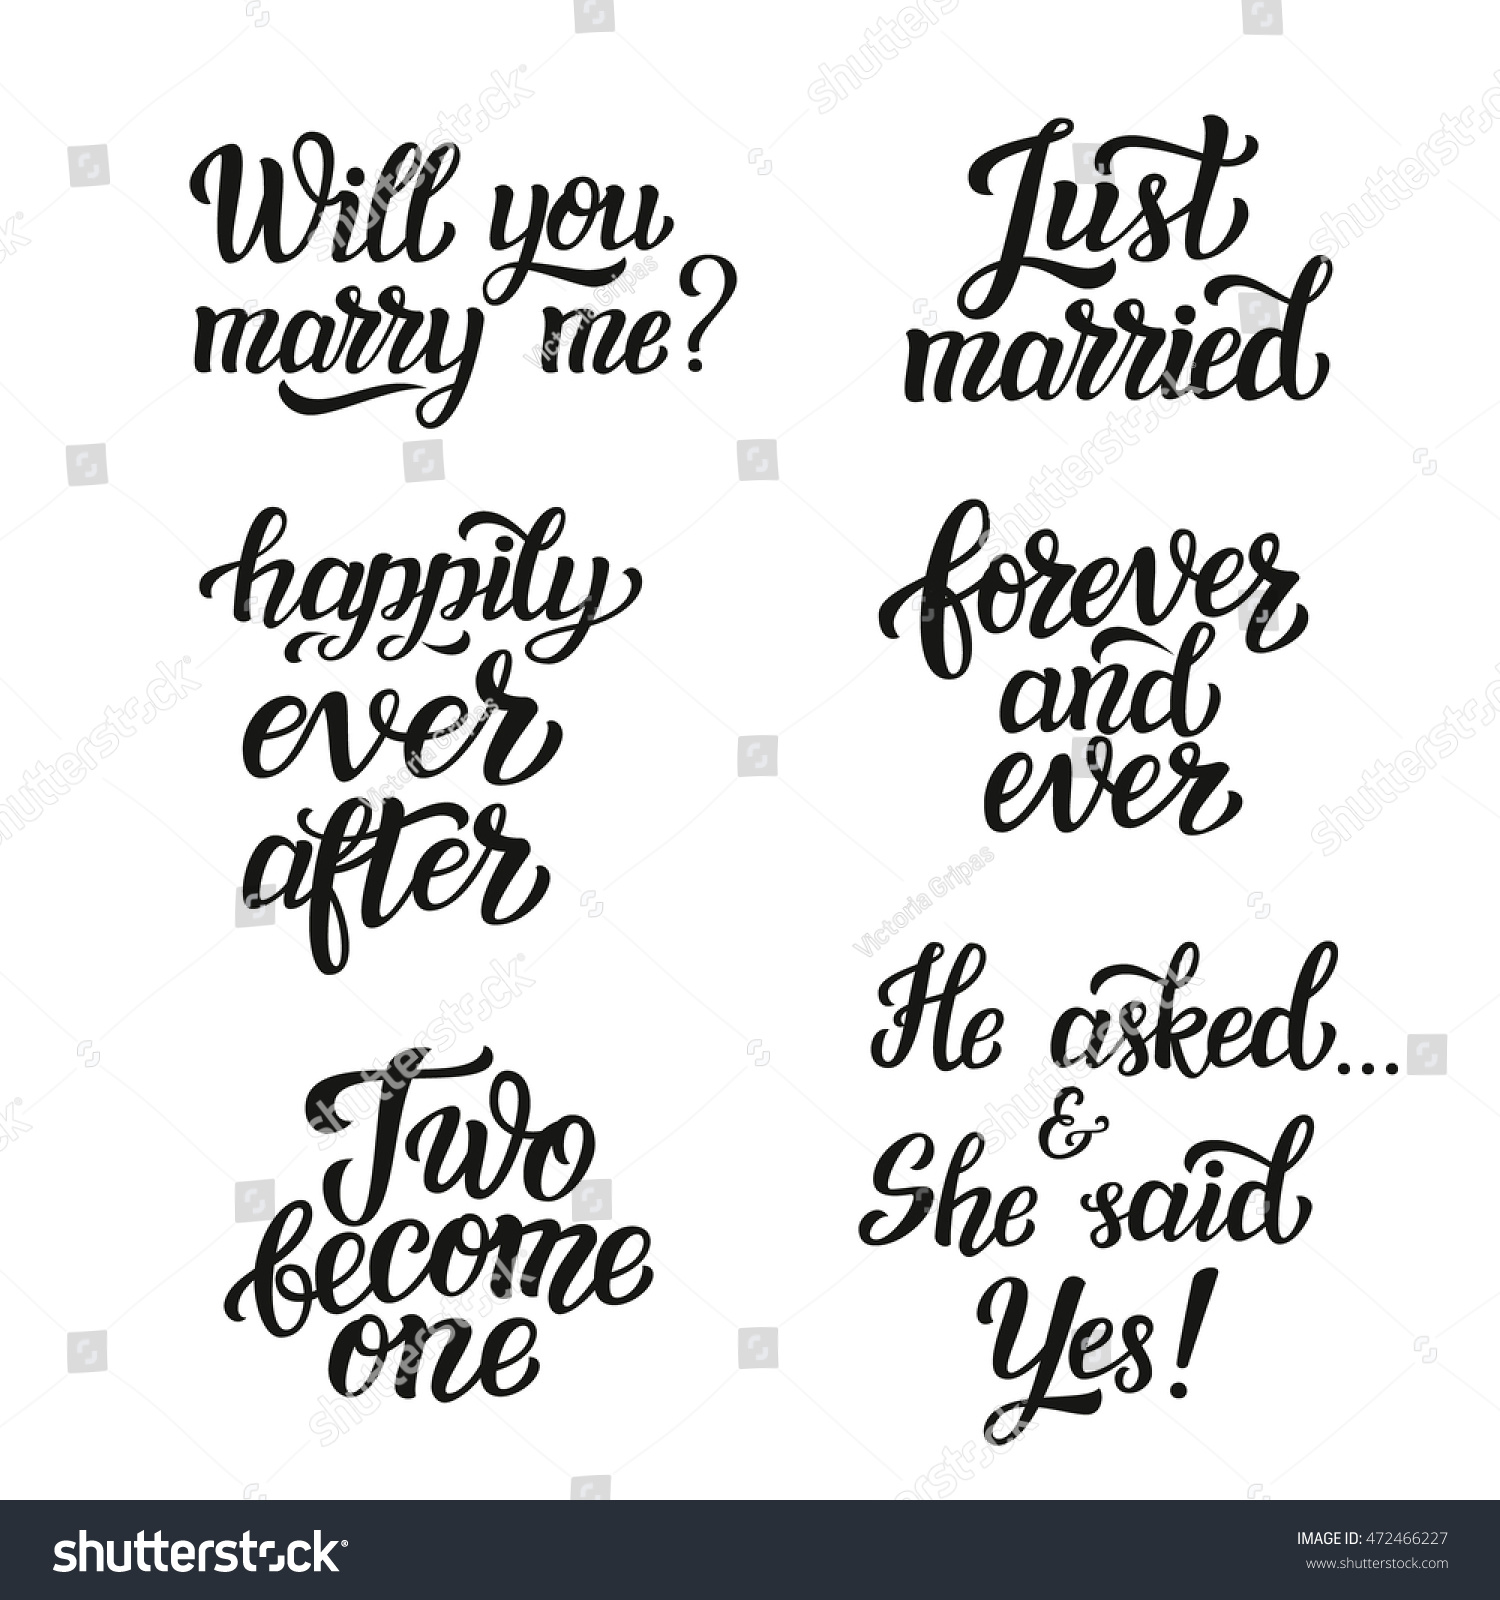 Just Married Quotes Hand Lettering Typography Wedding Set Romantic Stock Vector